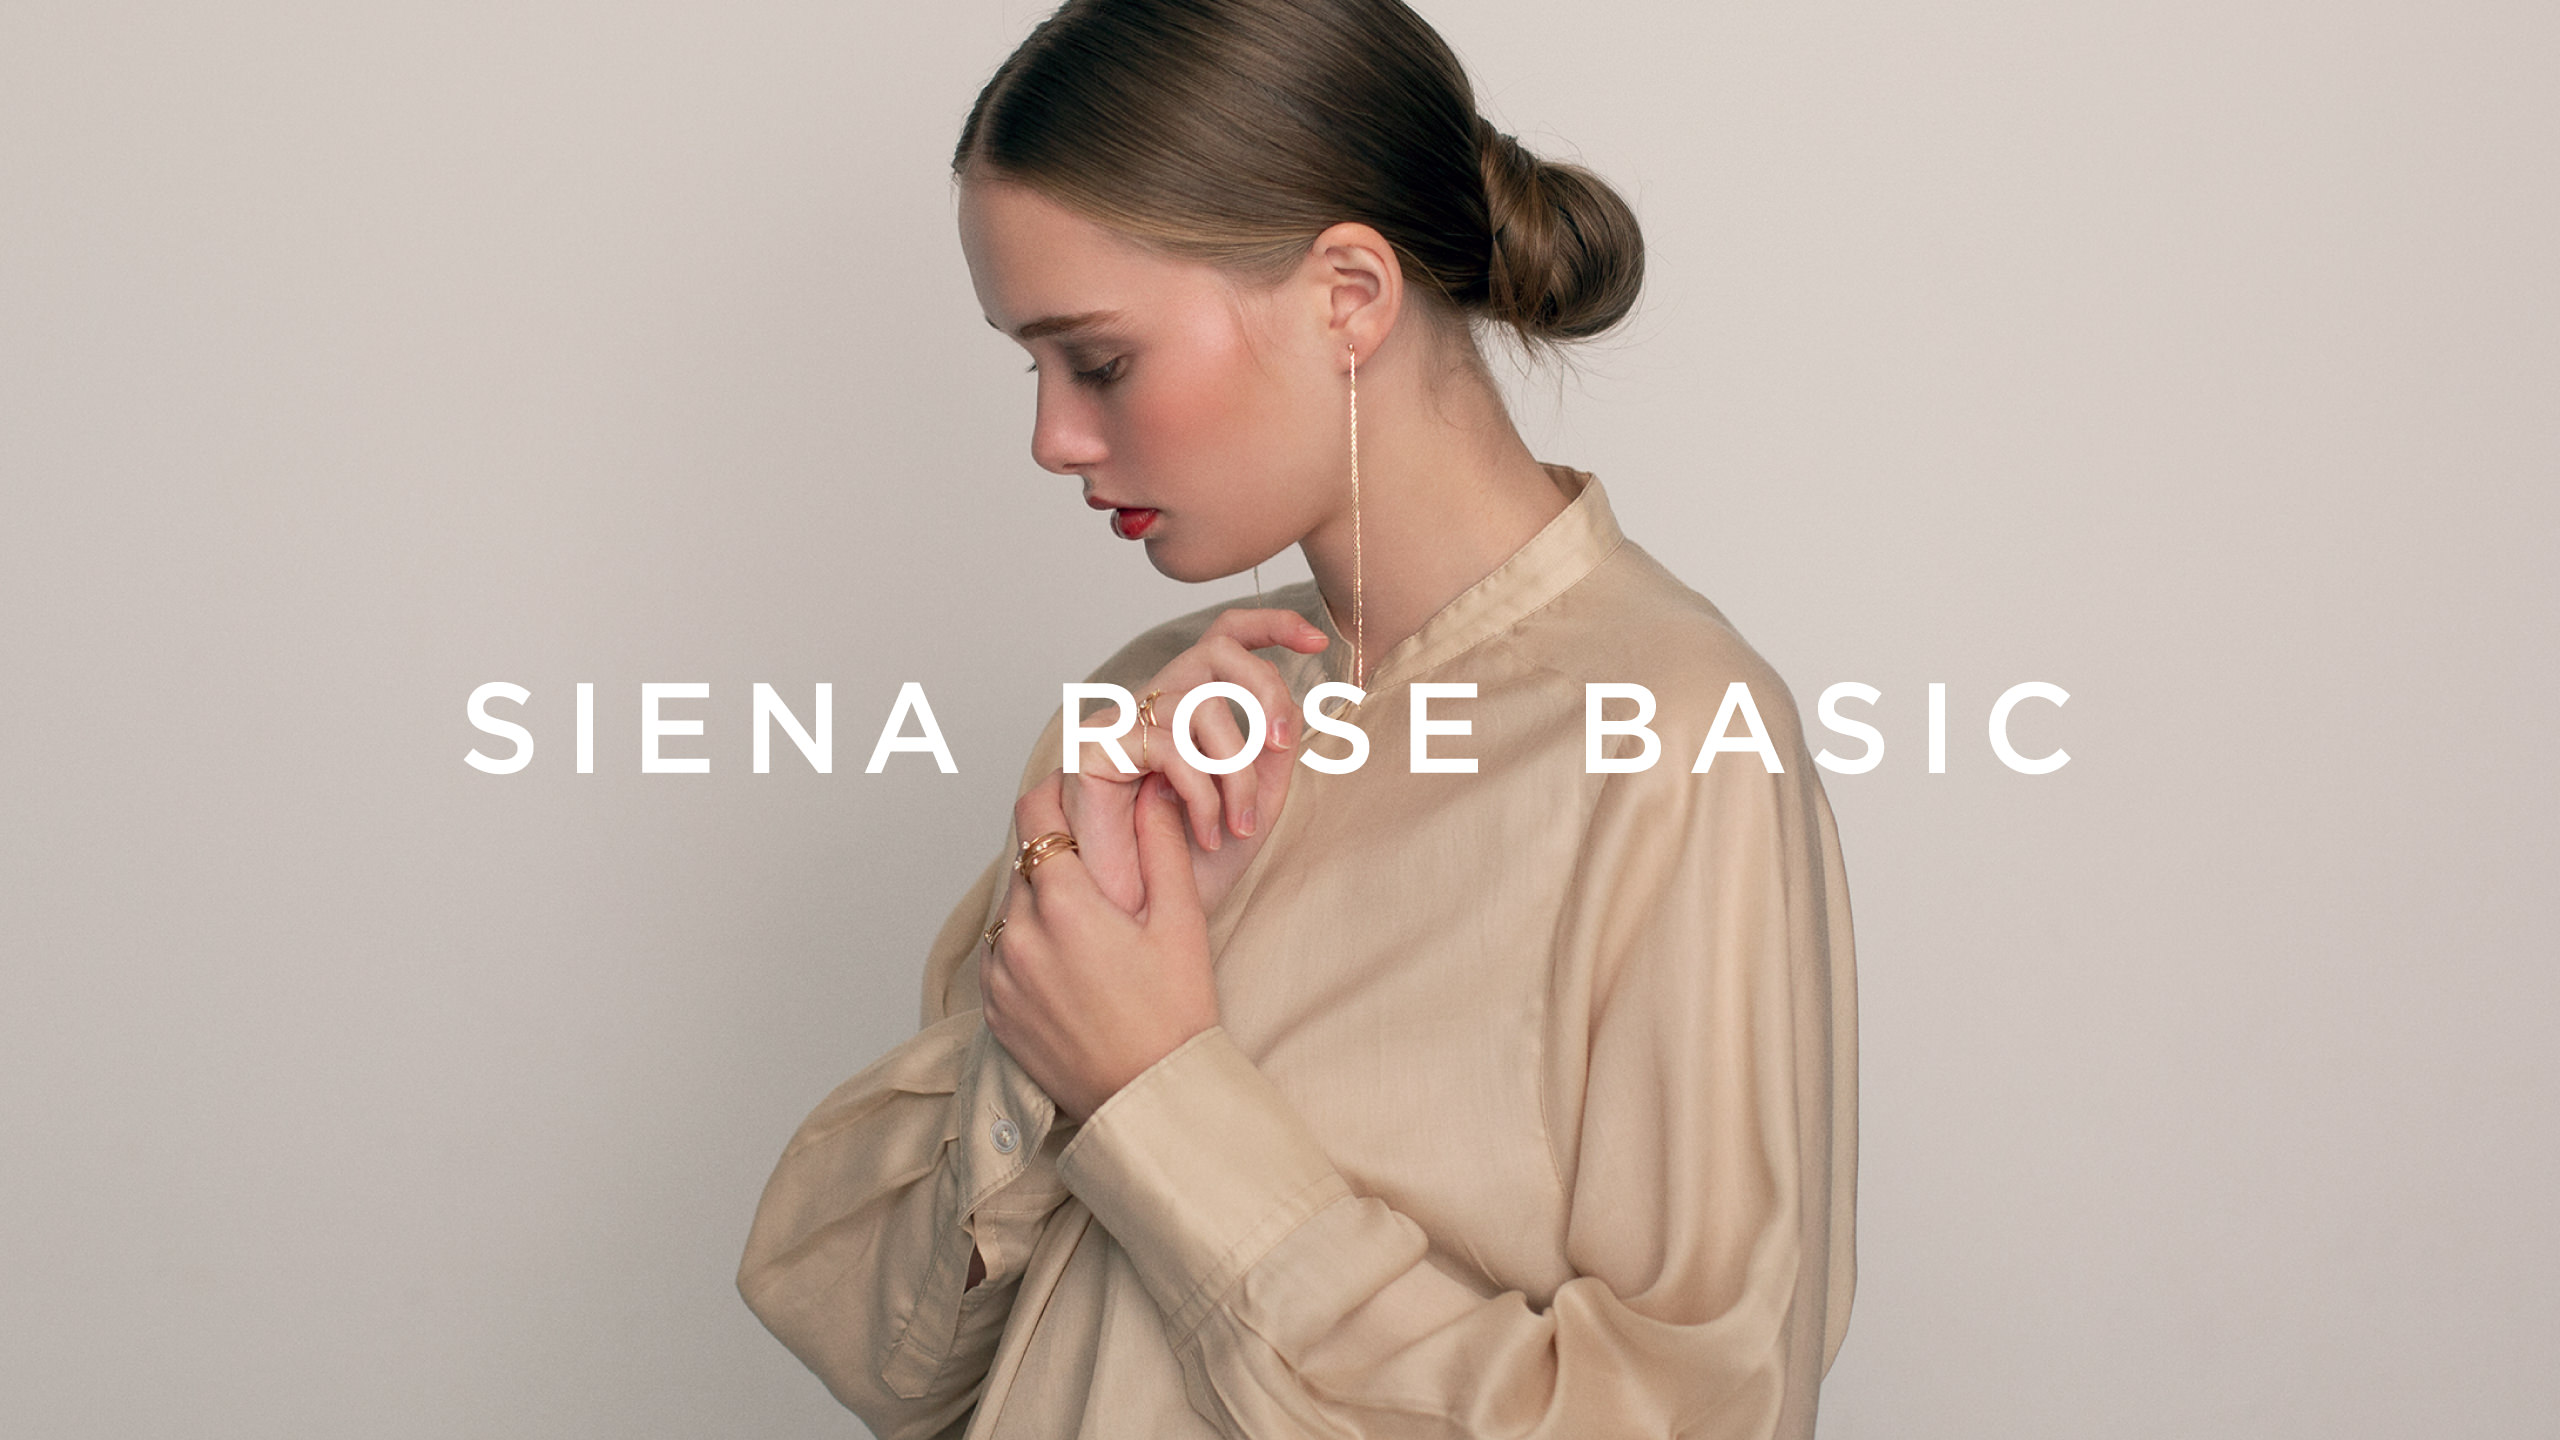 SIENA ROSE BASIC